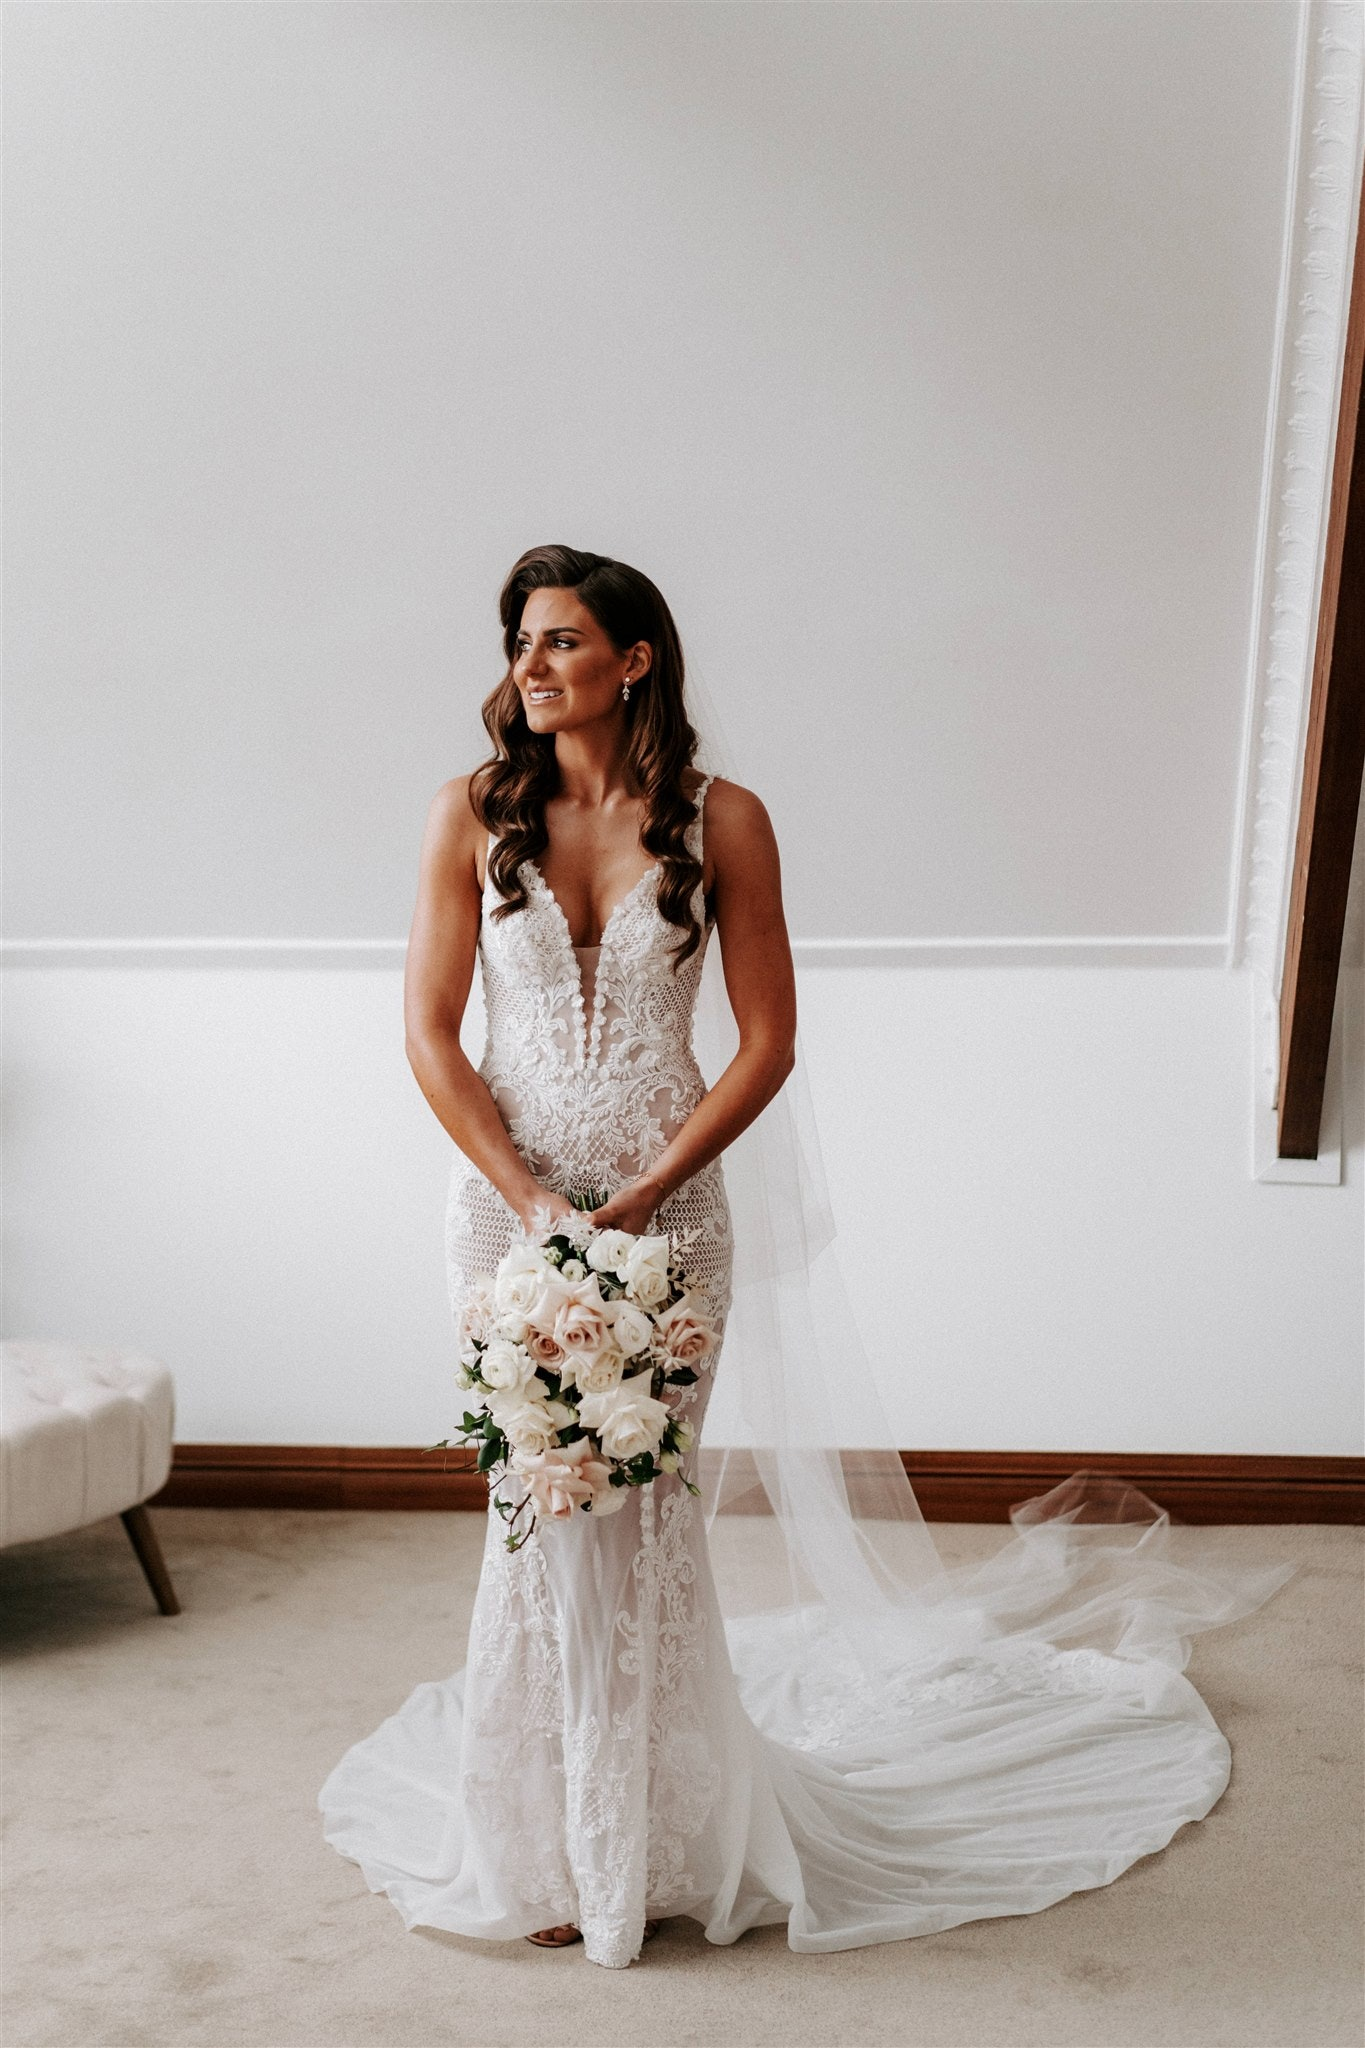 Bride standing alone in a room posing with a bouquet